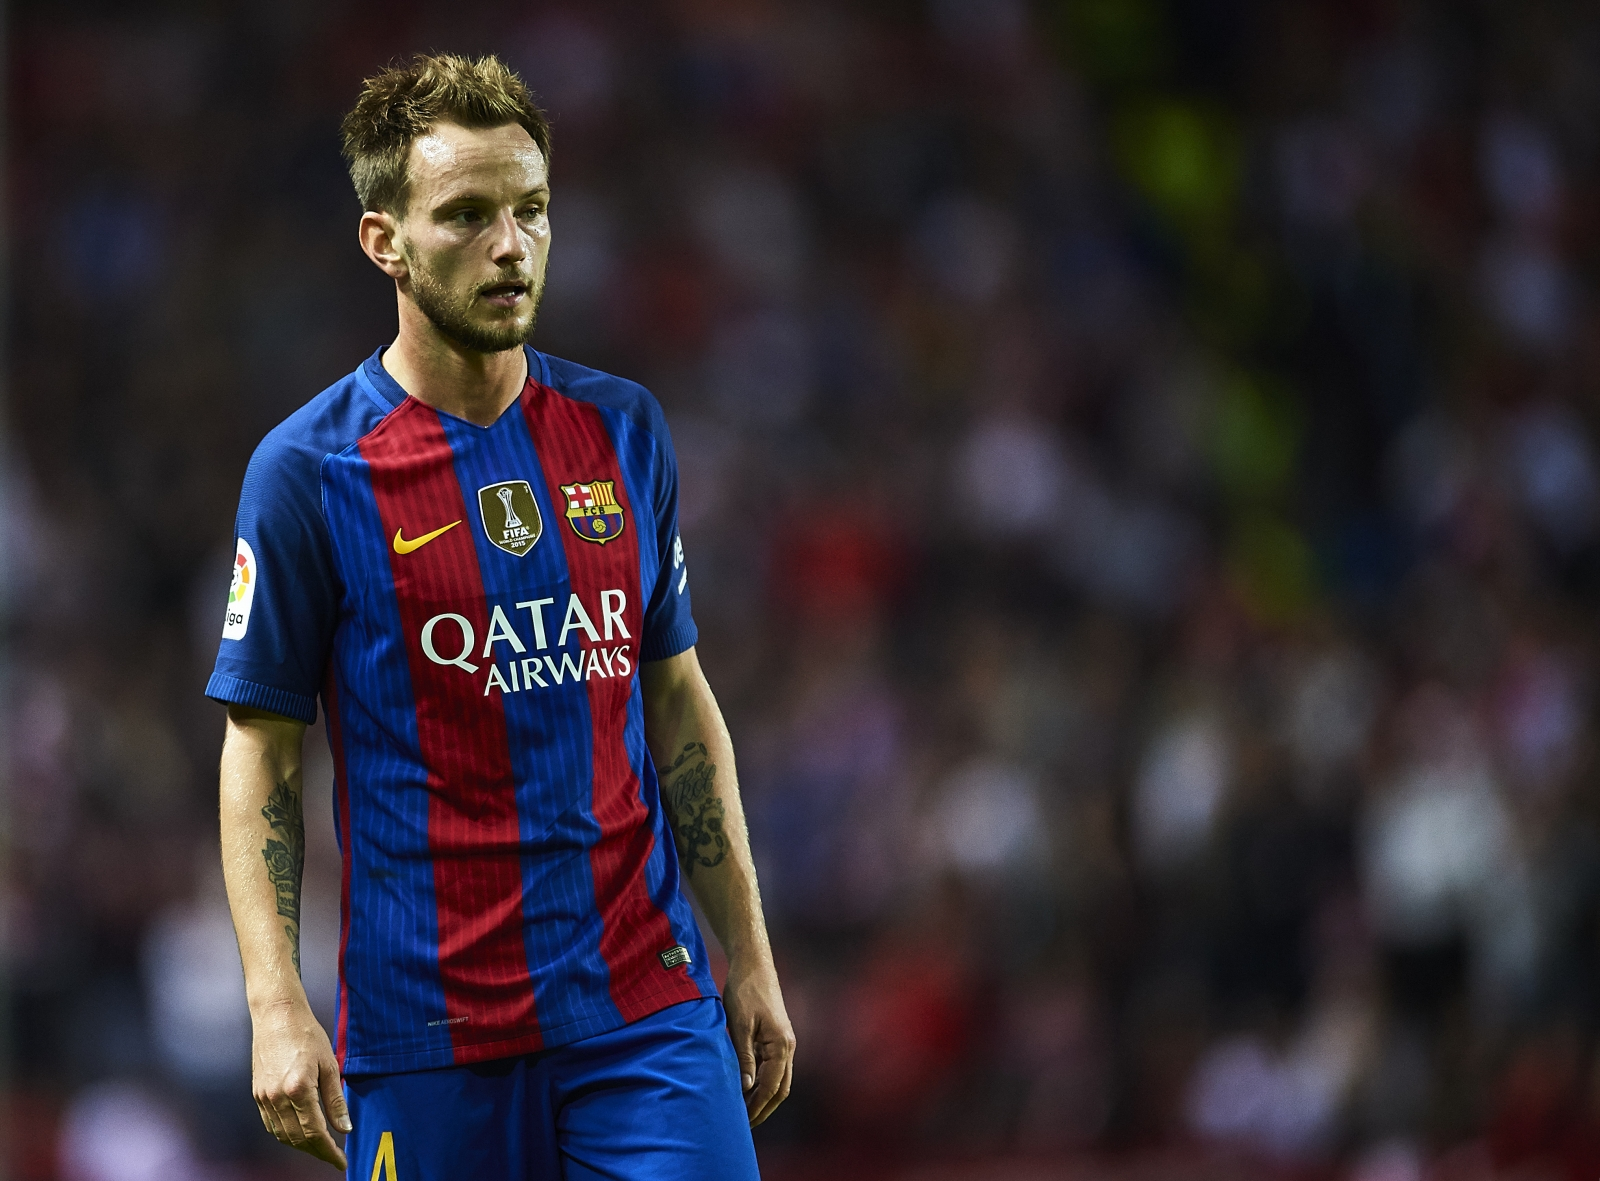 Luis Enrique Ivan Rakitić had offers to leave Barcelona amid